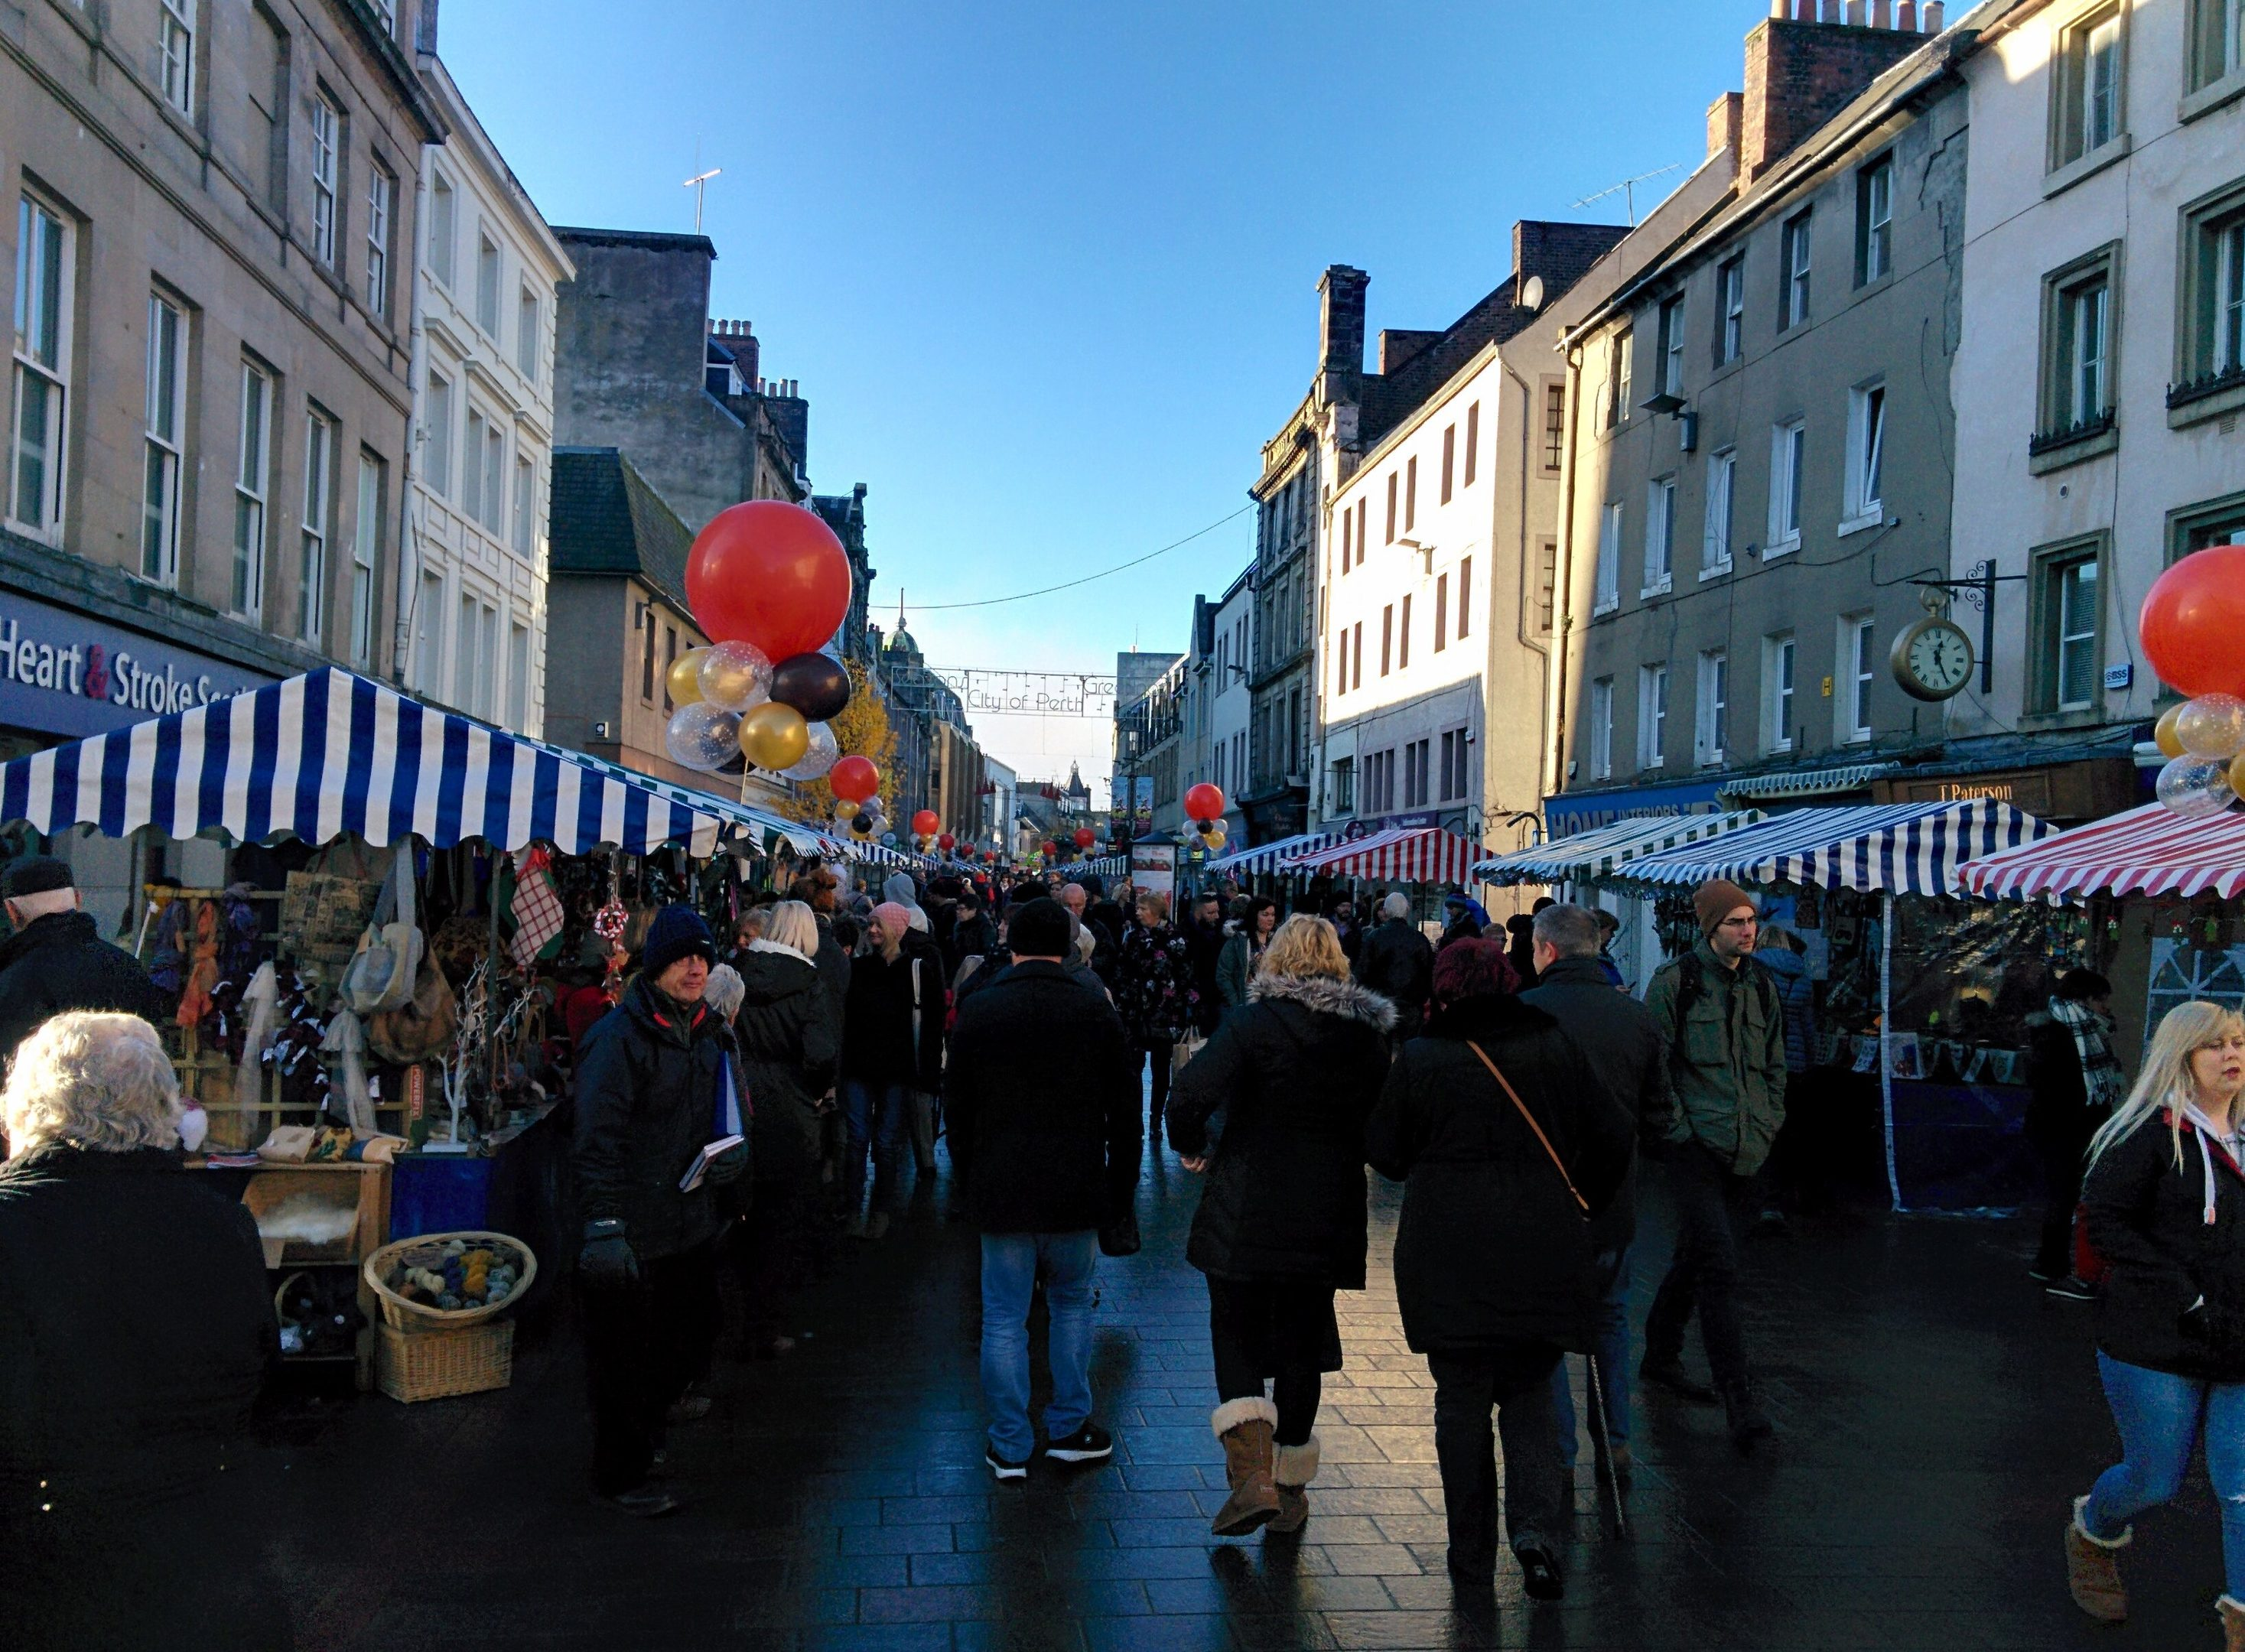 The festival of chocolate in Perth's High Street.